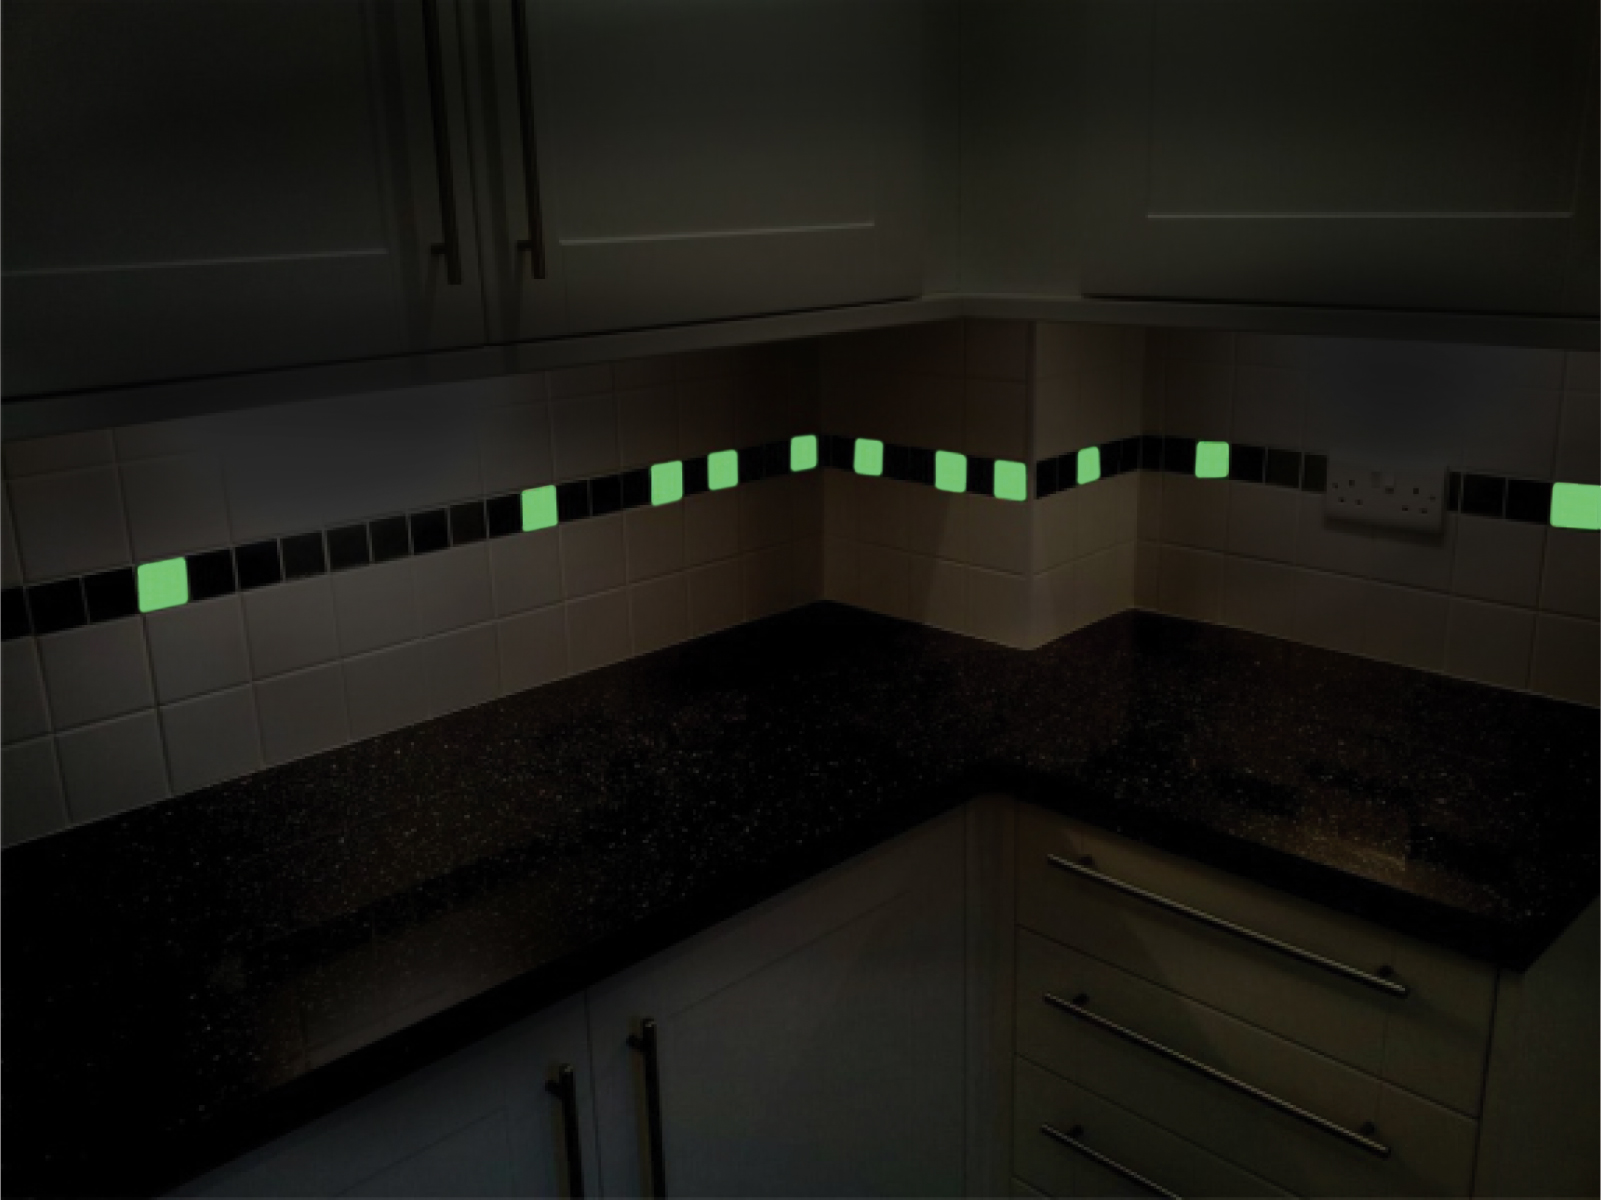 Glowing Glass Tiles